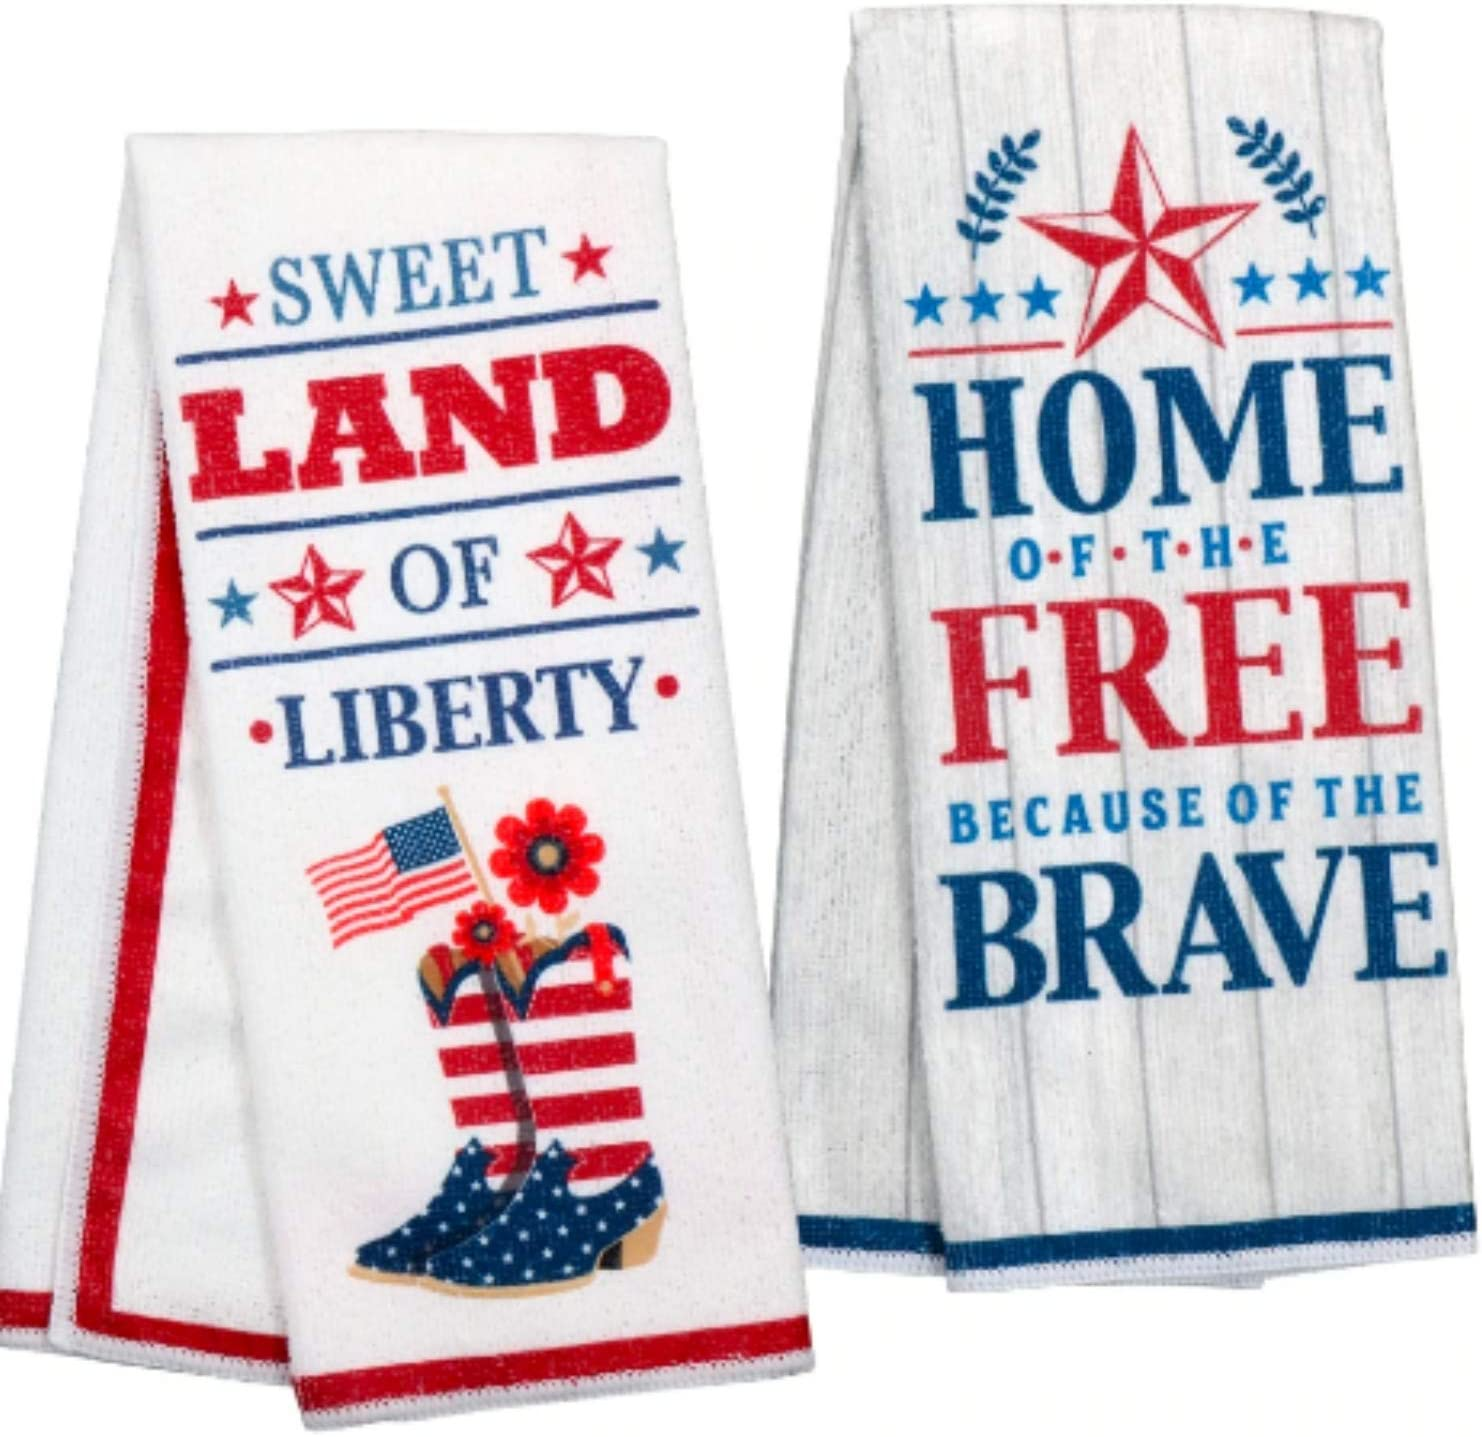 Patriotic Decor - Kitchen Towel Set - Show Your Patriotism with These Beautiful Kitchen Towels - Two Red White and Blue Dish Towels - Americana Home Decoration